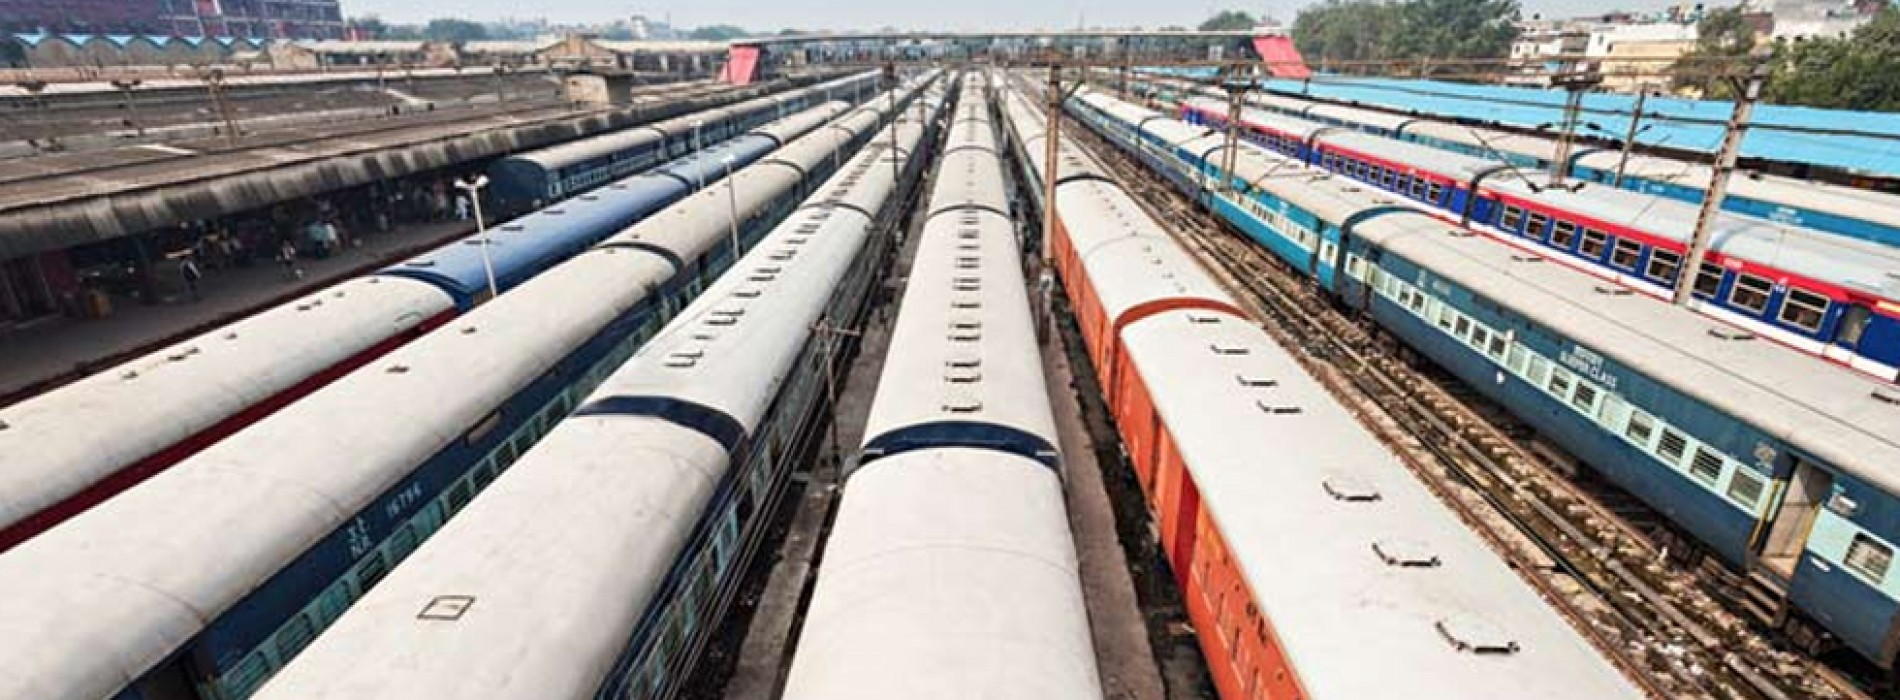 Indian Railways launches 'SAARTHI' app; here's everything you need to know